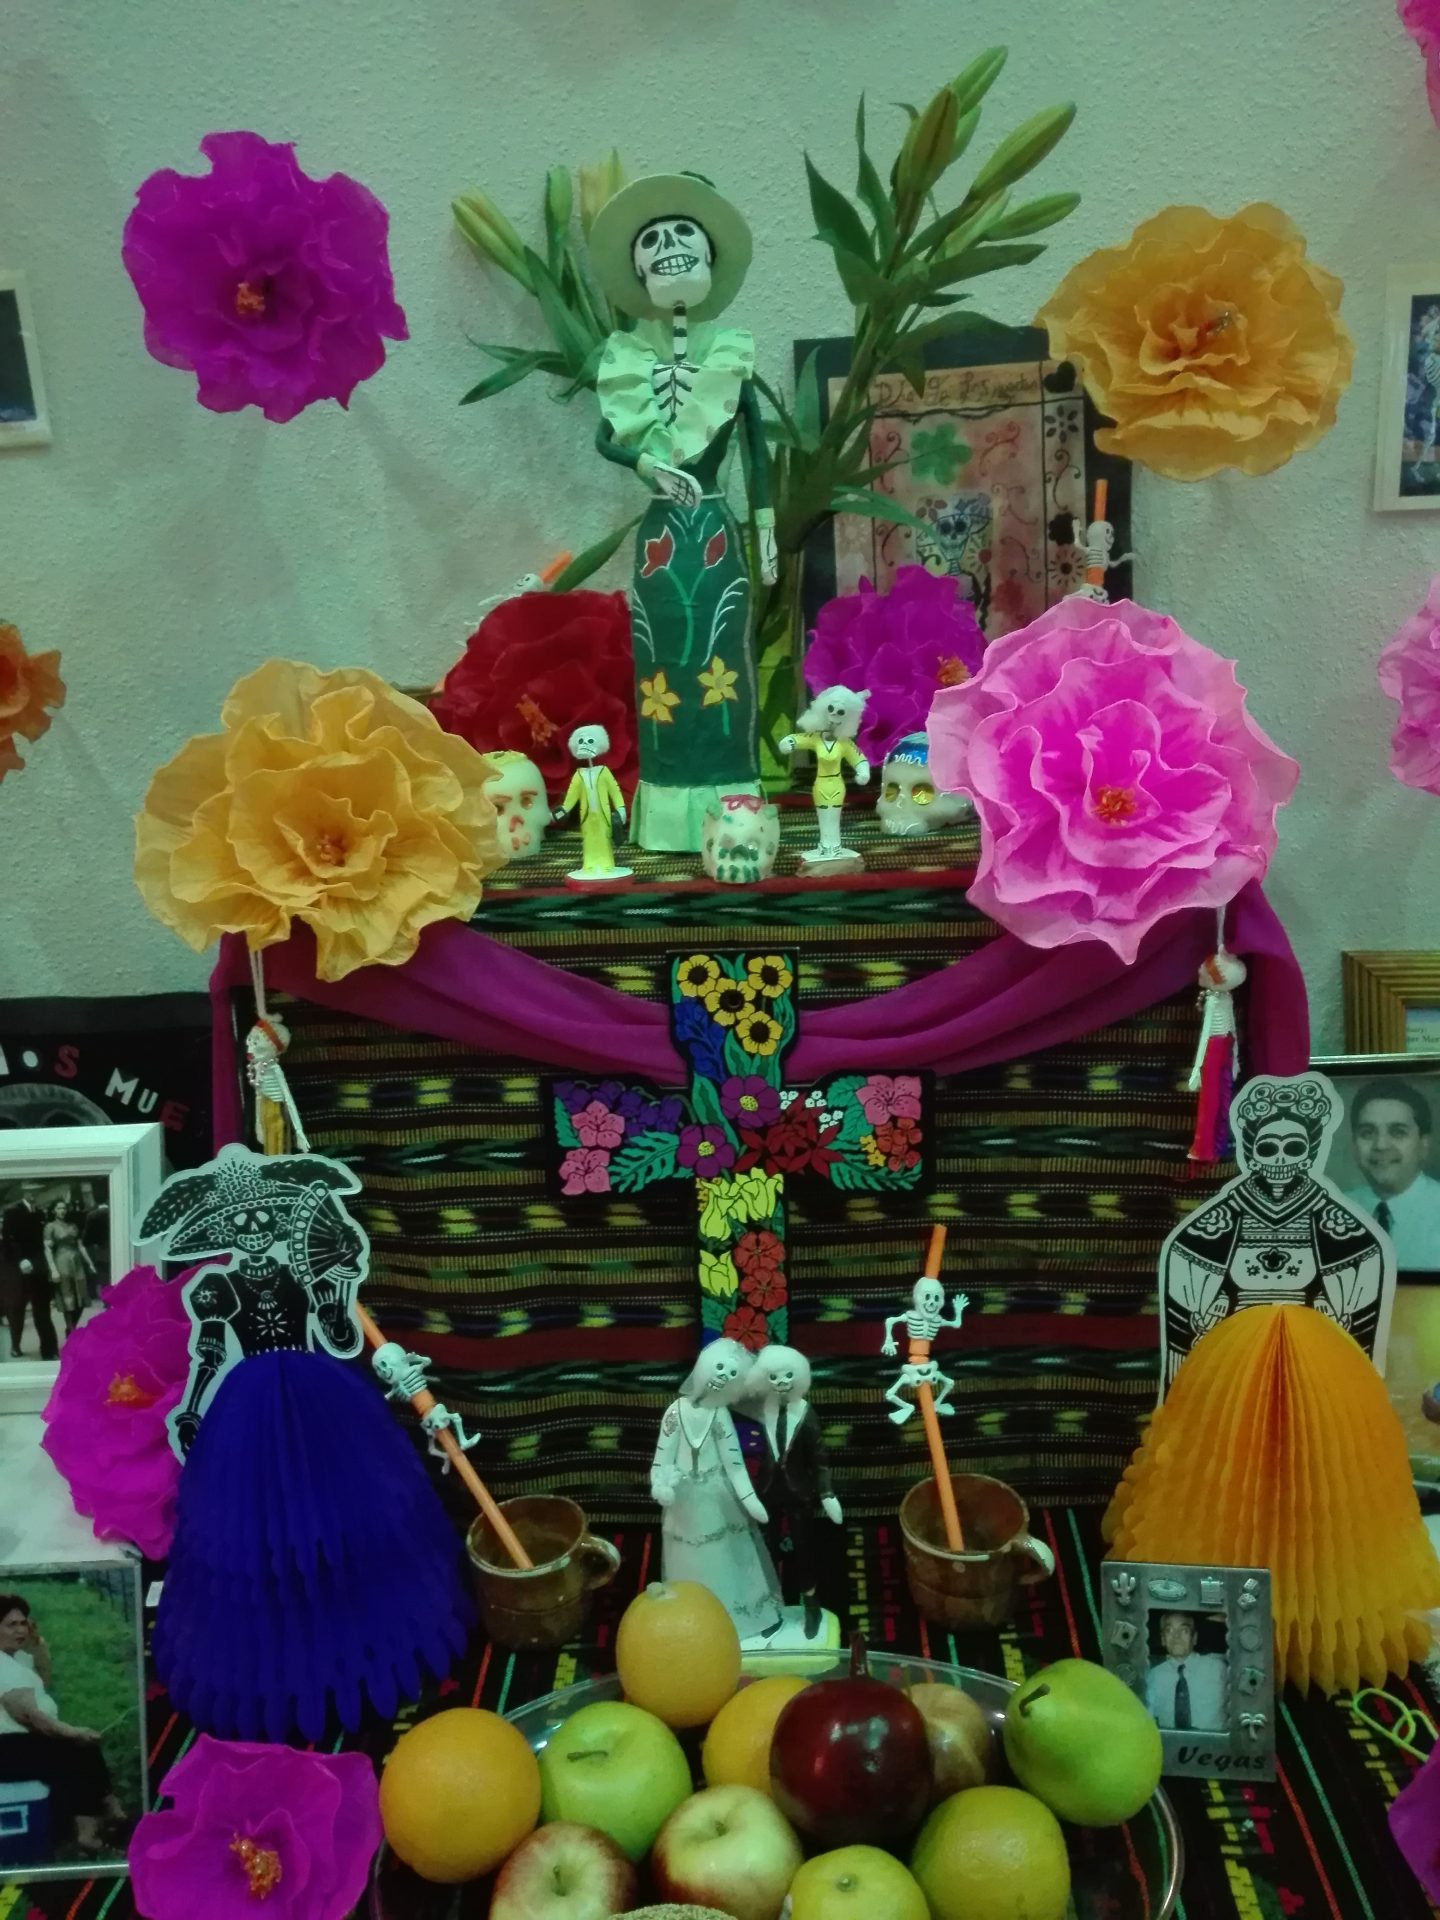 Mexican Day of the dead Altar with photos and flowers.